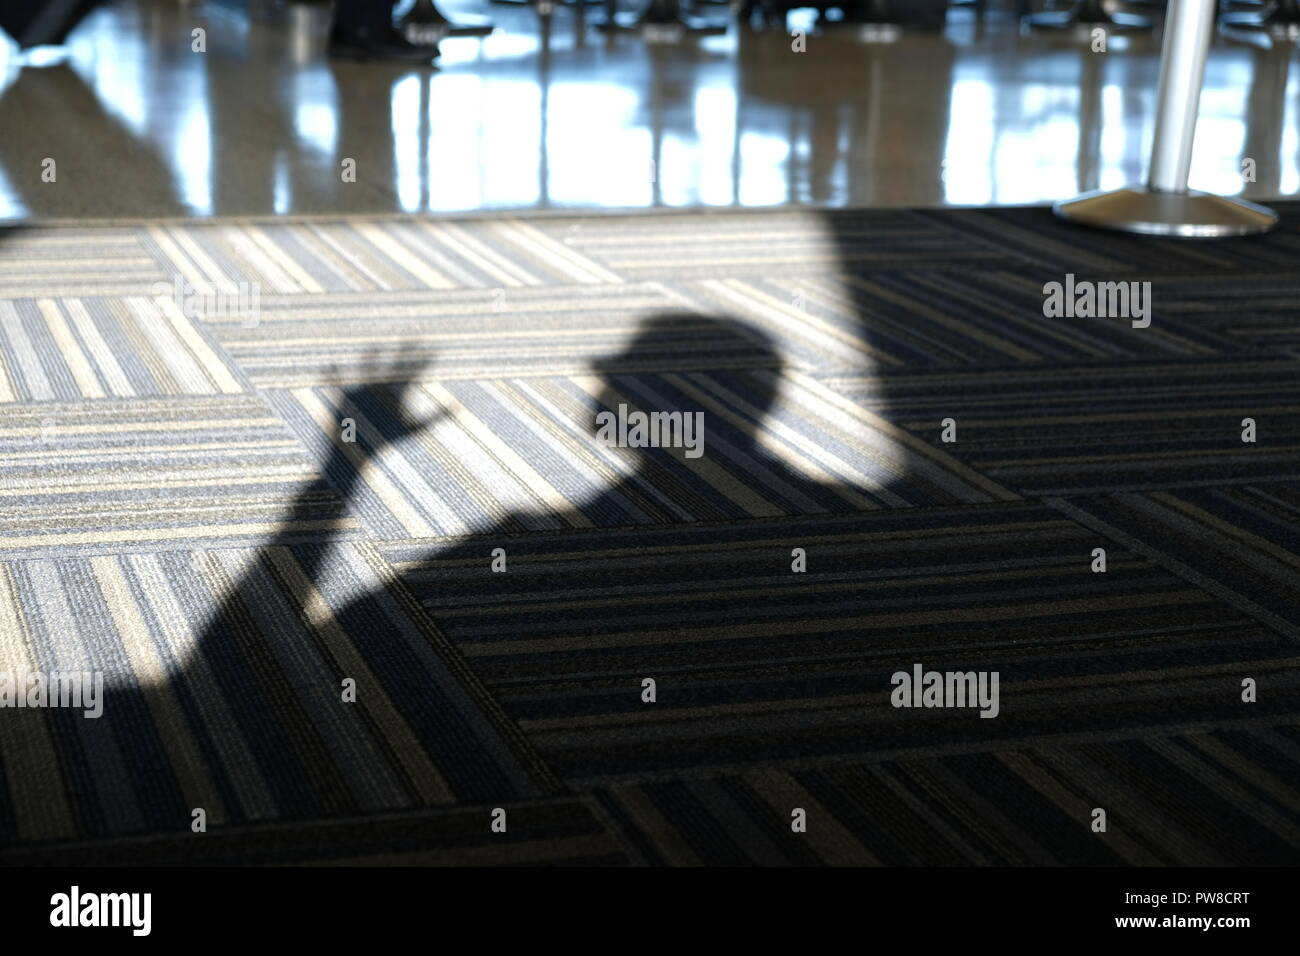 Silhouette or shadow of a man on the carpet; surprised, alarm, distress. - Stock Image